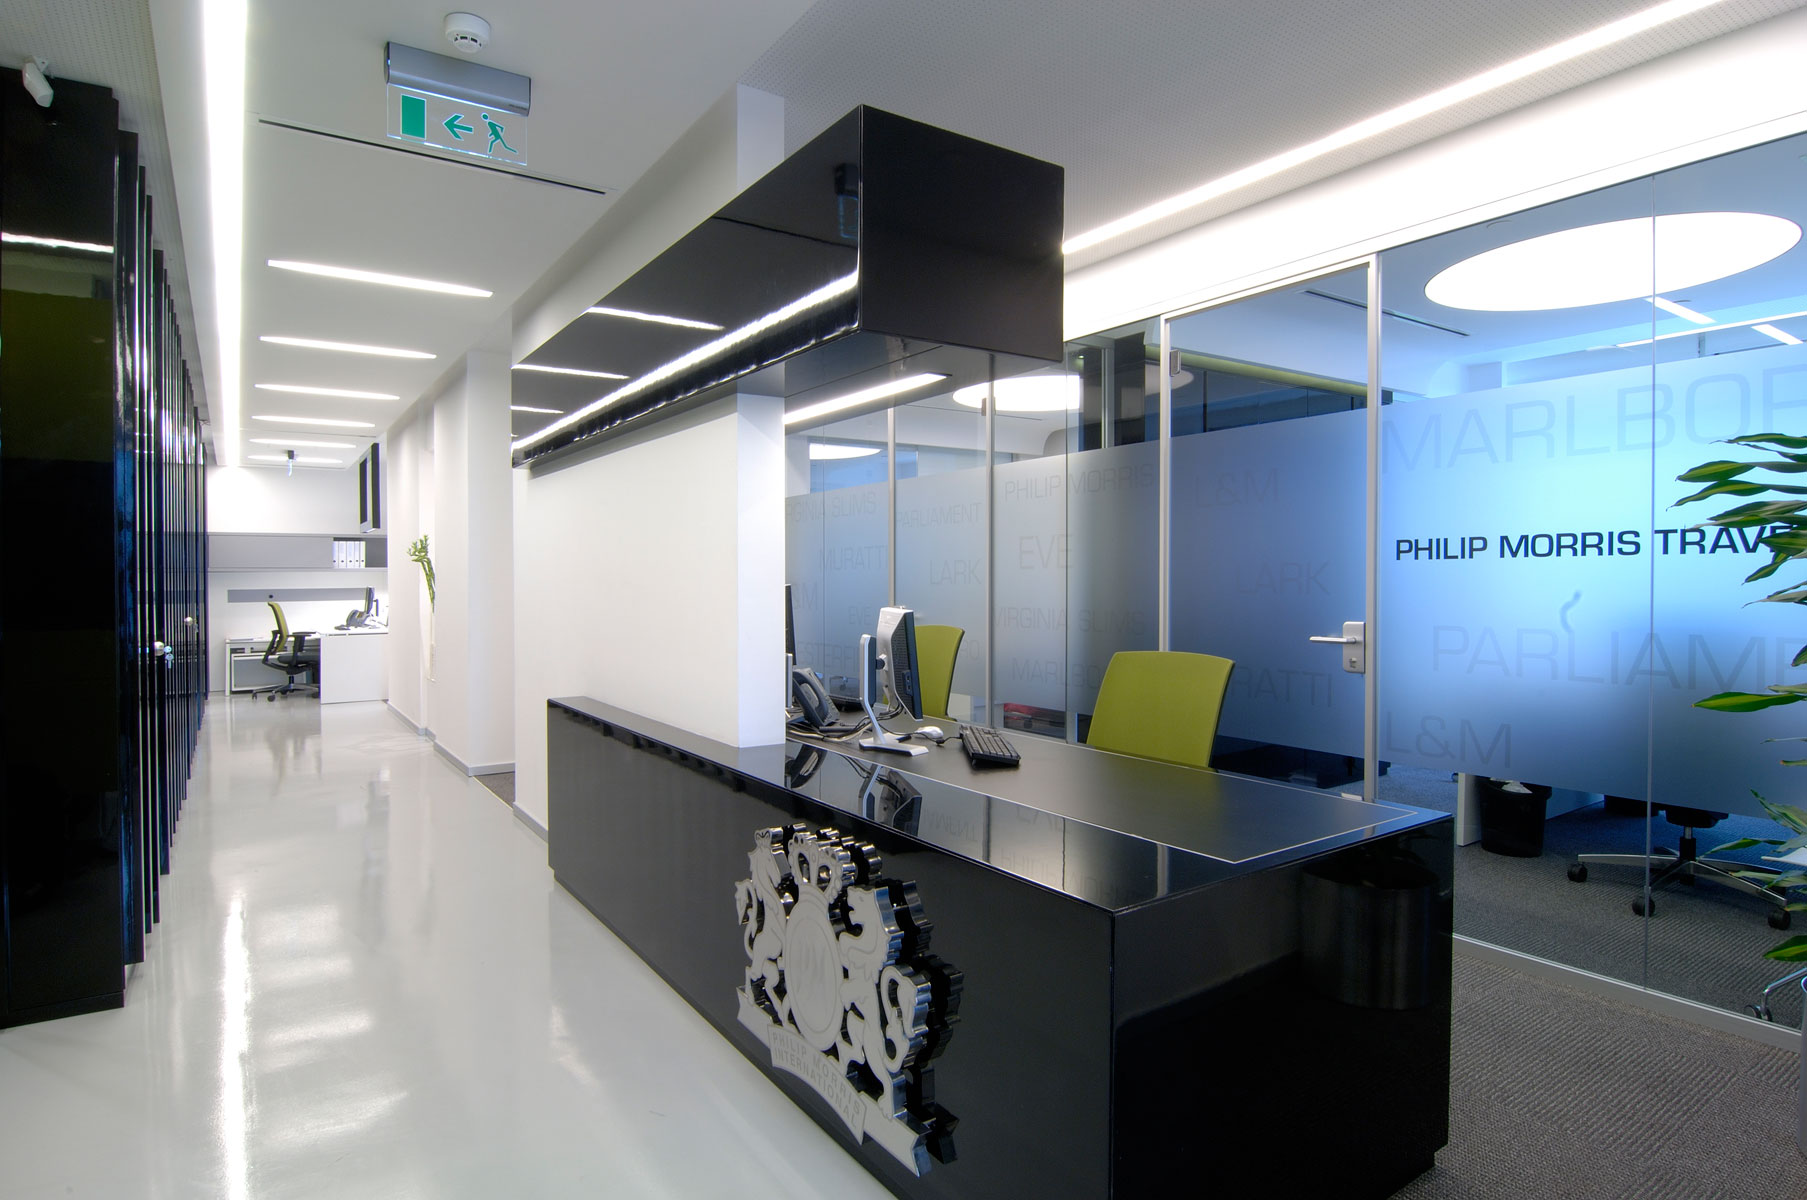 Philip morris travel sales office mimaristudio for Interior design travel agency office